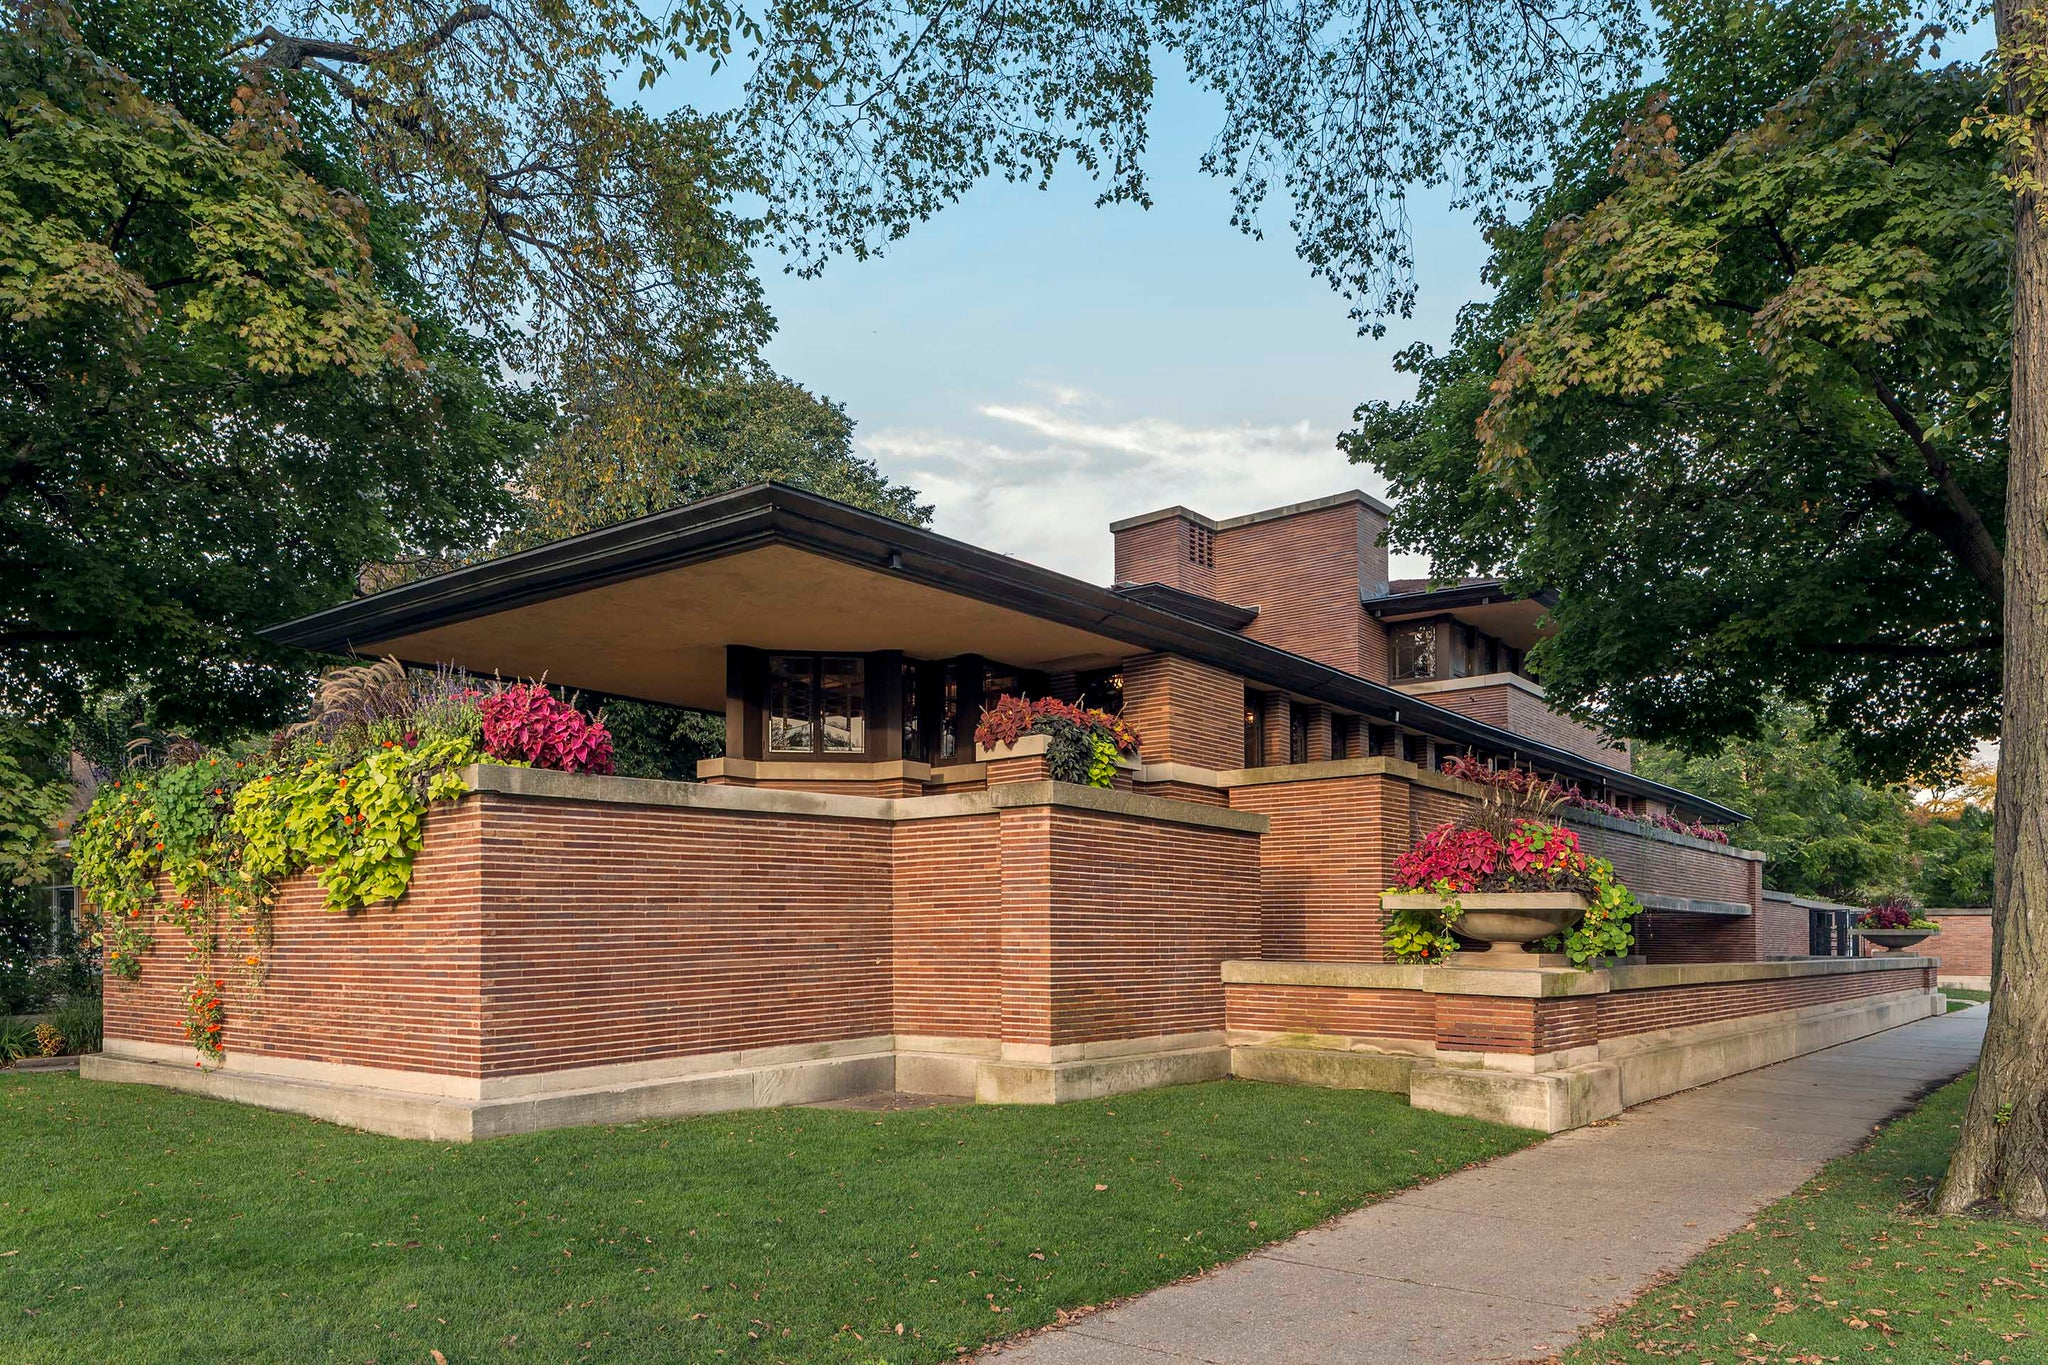 Frank Lloyd Wright Robie house in Chicago